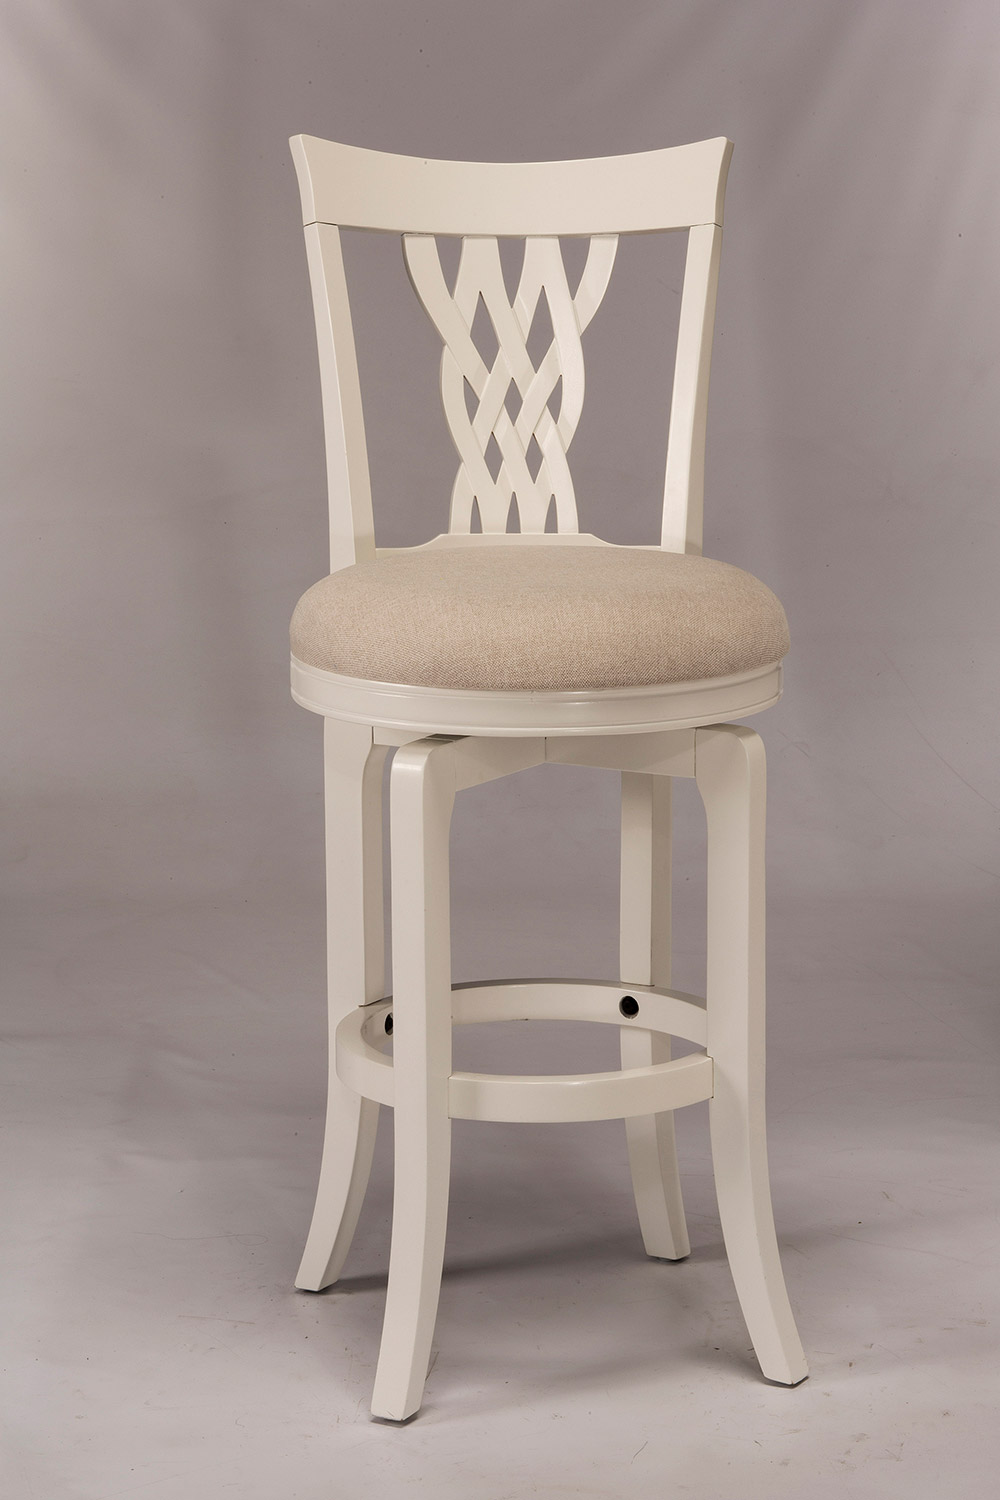 Hillsdale Embassy Swivel Counter Stool - White